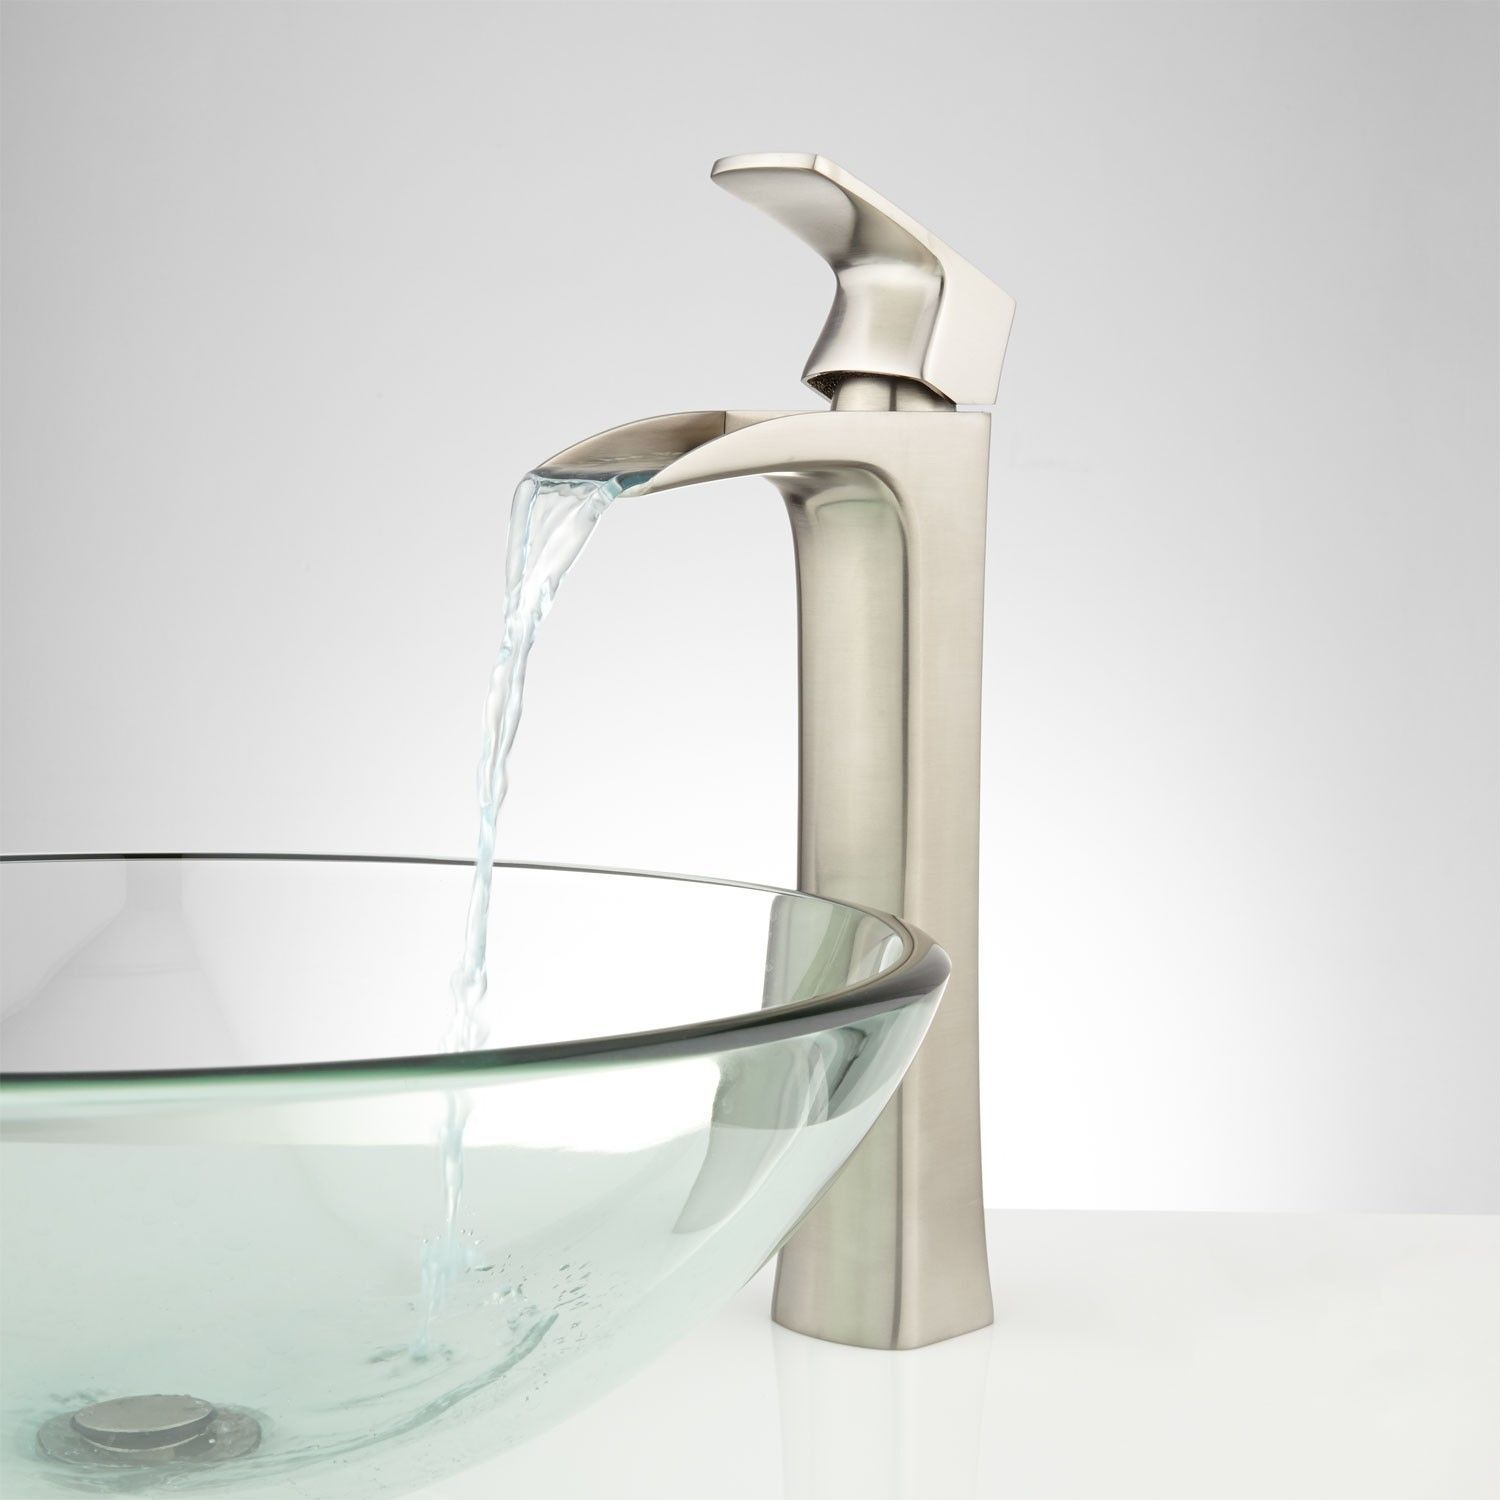 Waterfall Bathroom Vessel Sink Faucet Brushed Nickel pertaining to dimensions 1500 X 1500